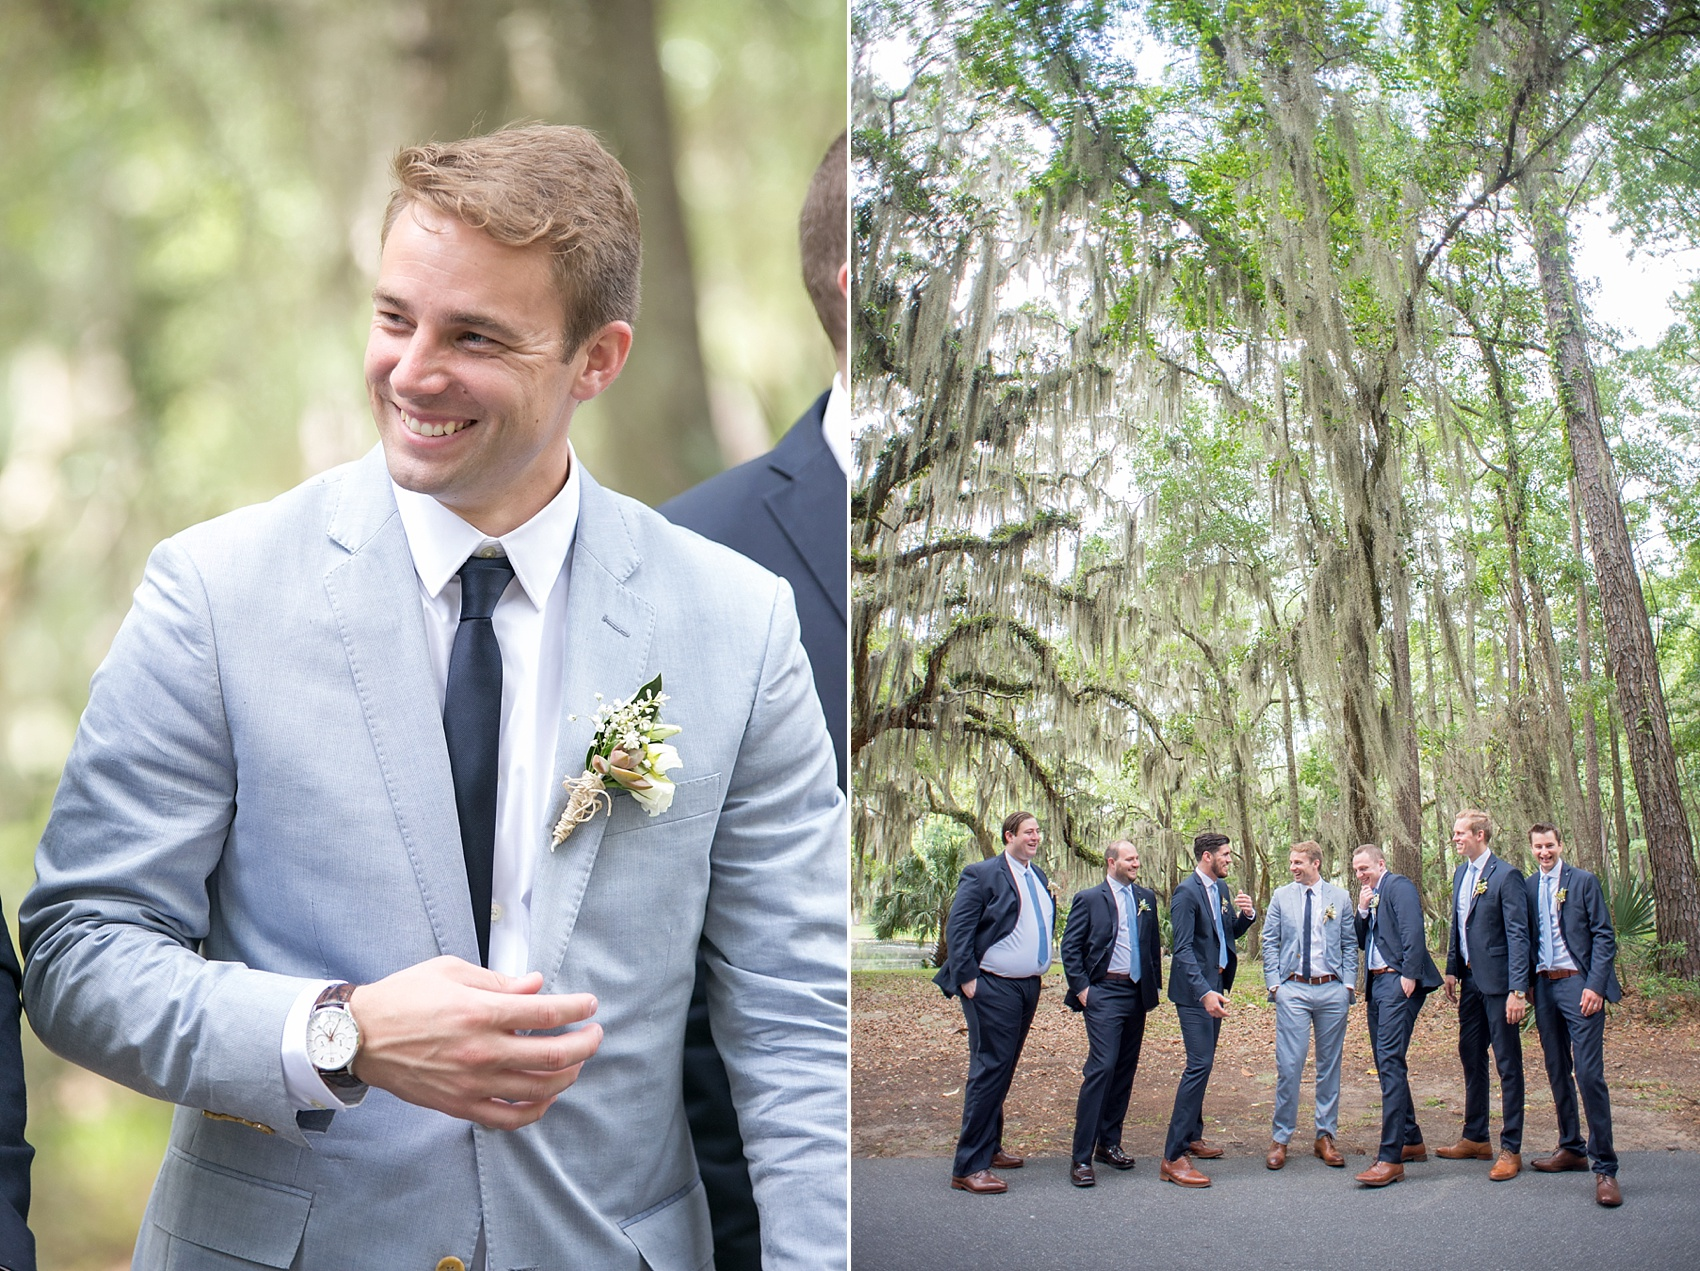 Navy groomsmen photos in Haig Point, South Carolina, off the coast of Hilton Head. Photos by Mikkel Paige Photography. Succulent boutonnieres complete their look.